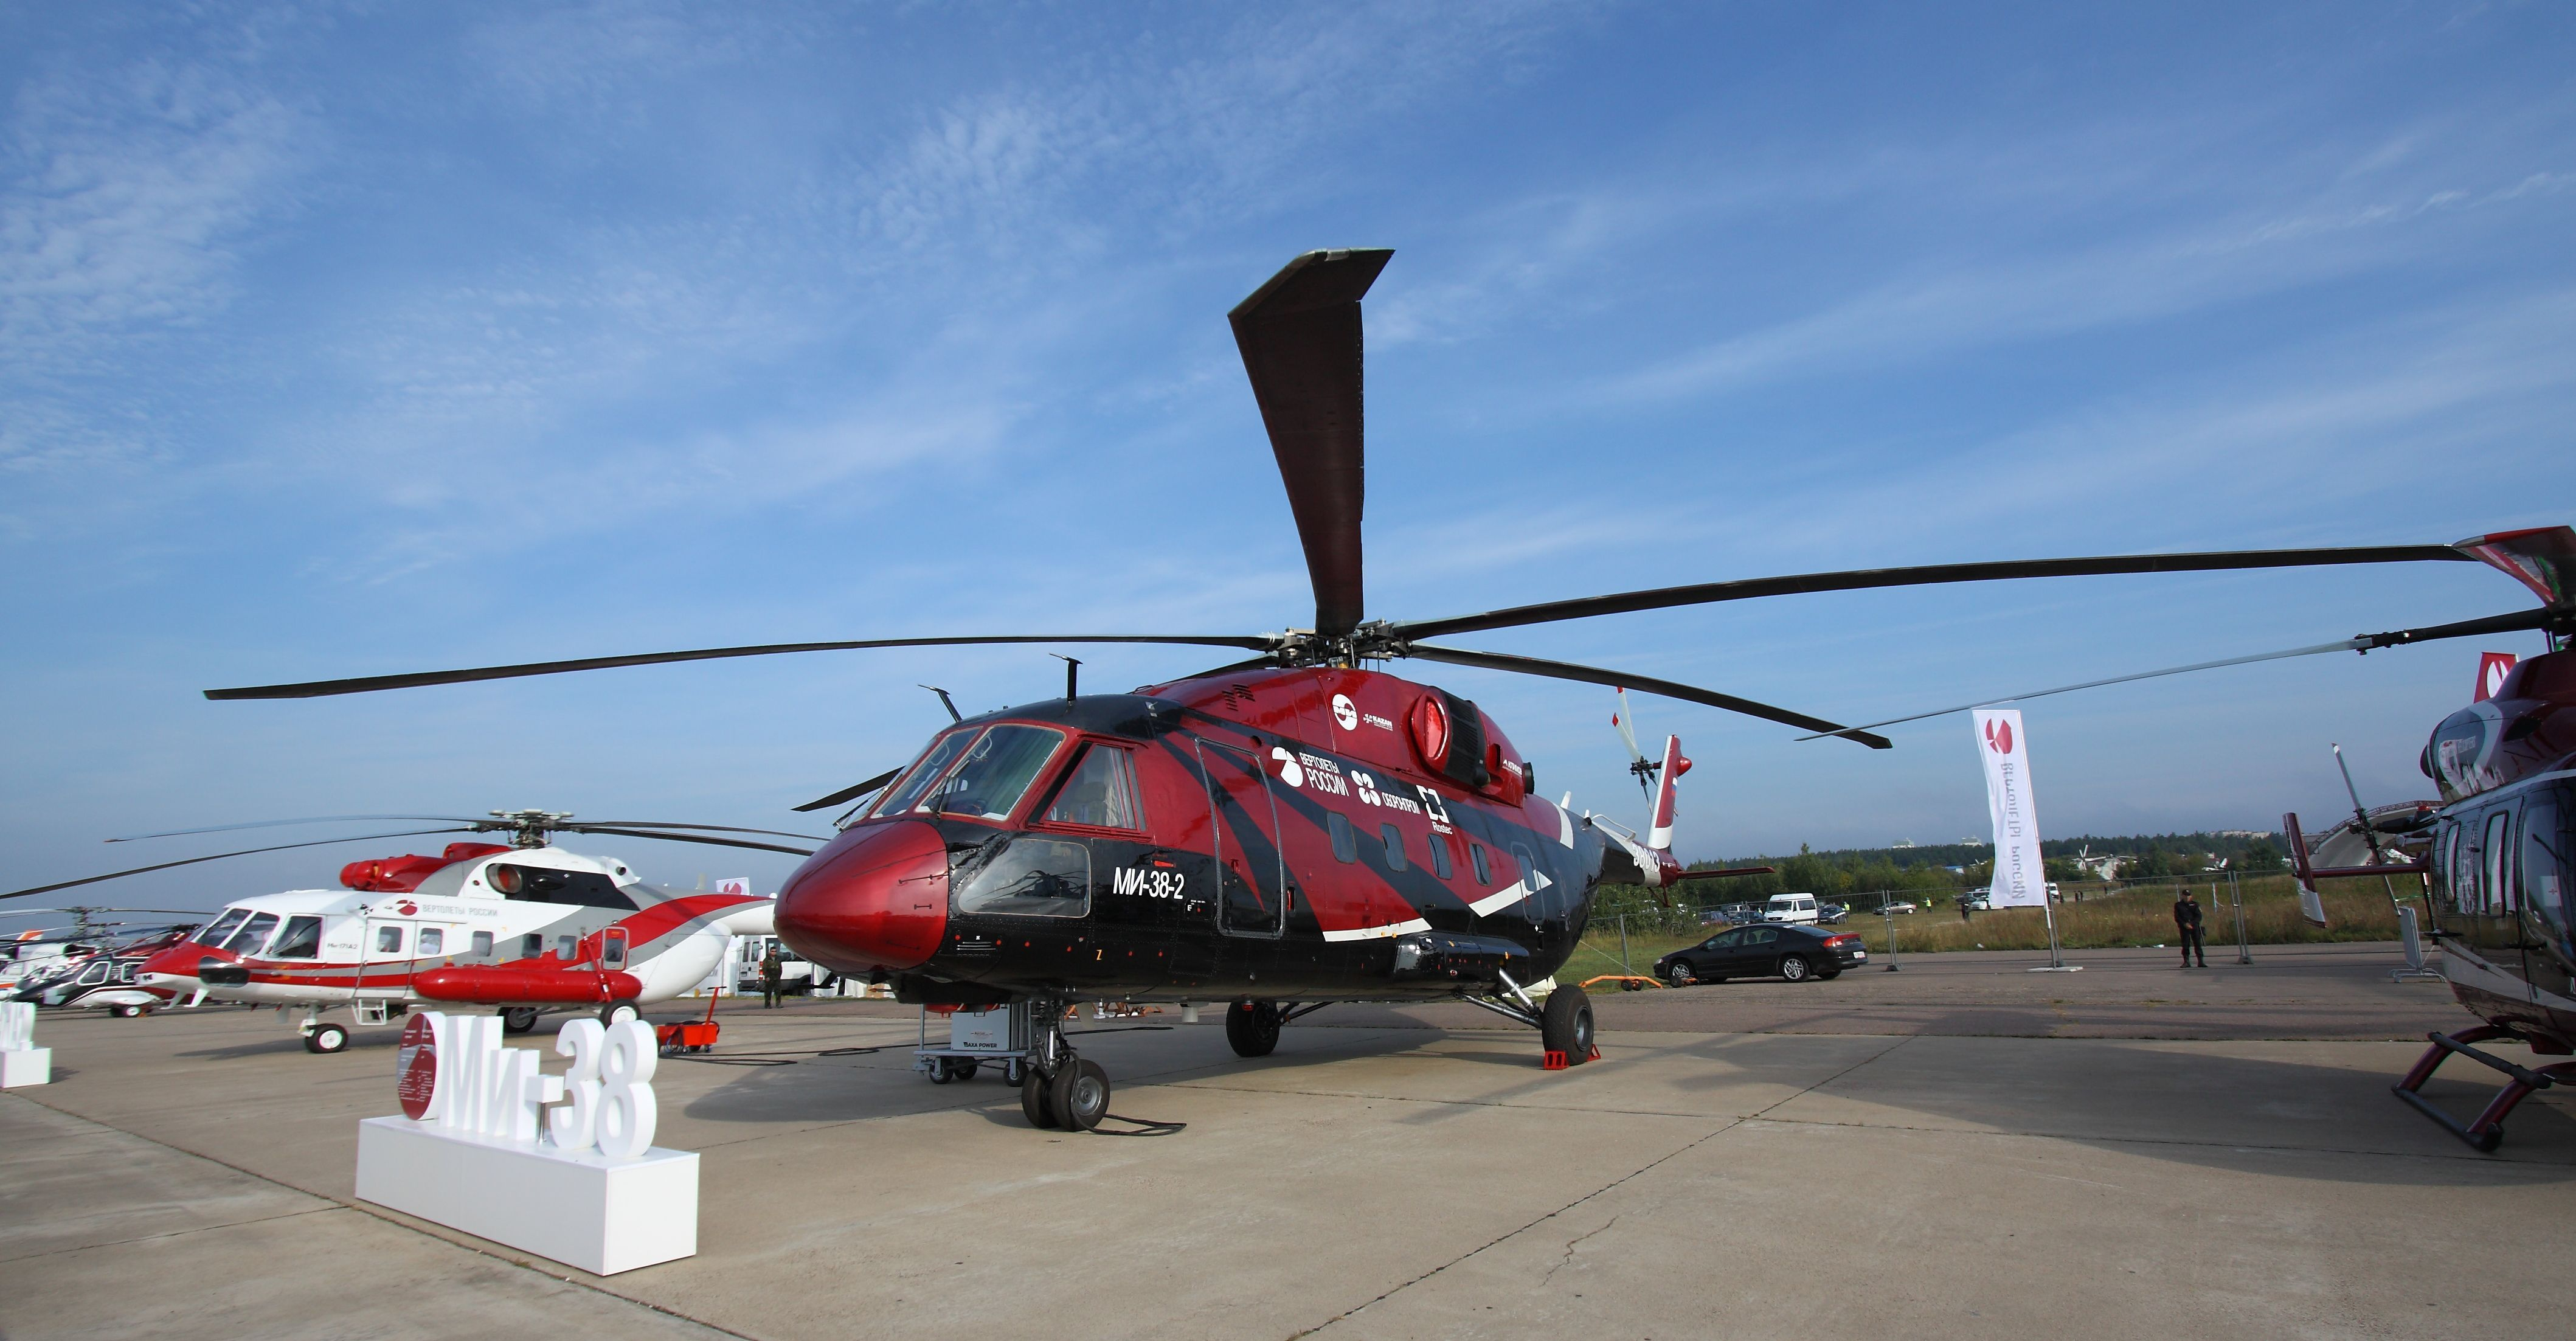 helicopter 4 blades with Mil Mi 38 on T He 372 Helicopter Basic Template together with Ec225 Main Rotor Mgb Design also Ah 1s Cobra Helicopter as well Helicopter Driver 1427469 additionally Flying Car.